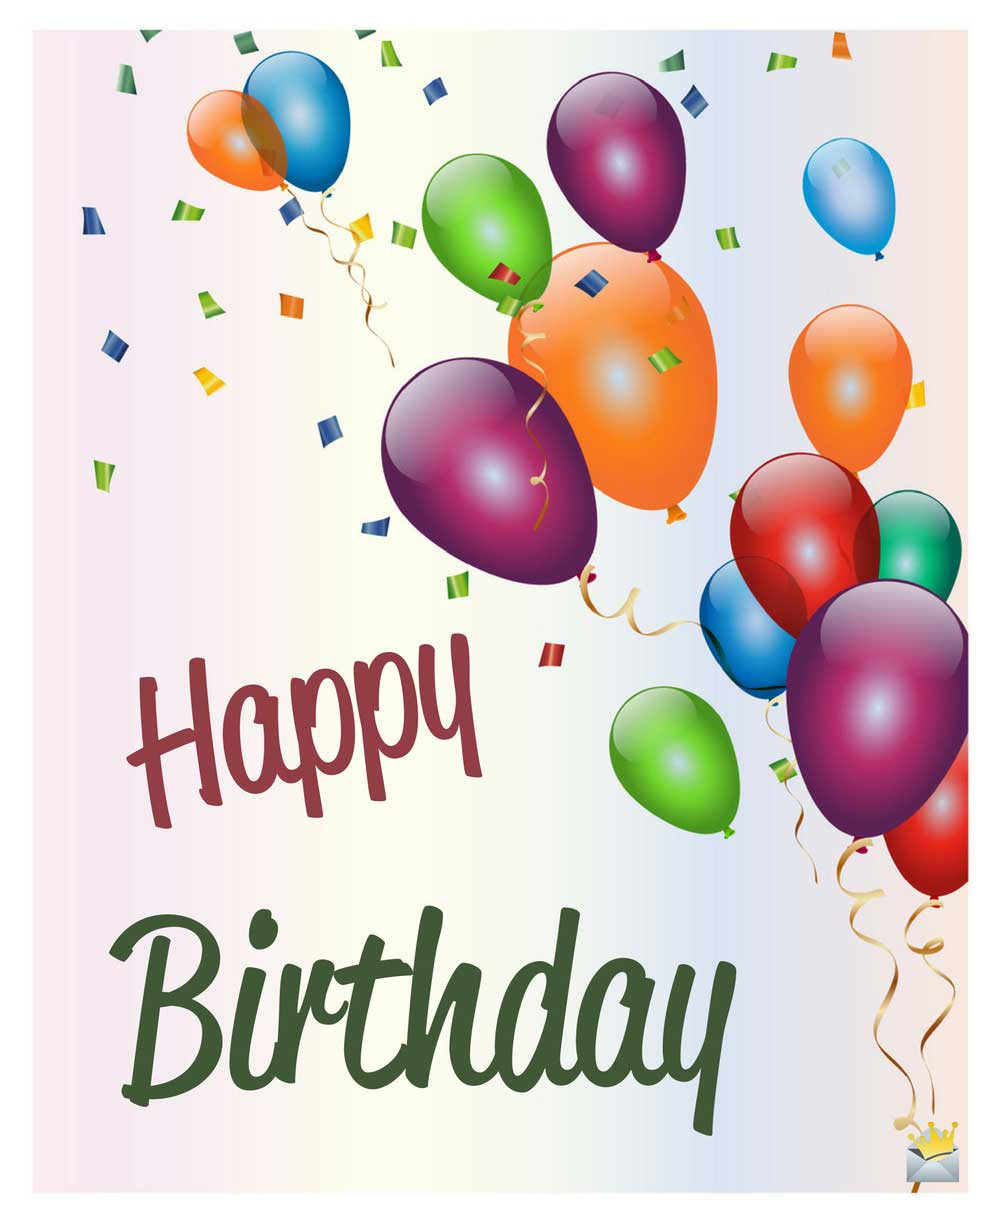 happy birthday picture msg ; happy-birthday-msg-for-best-friend-4